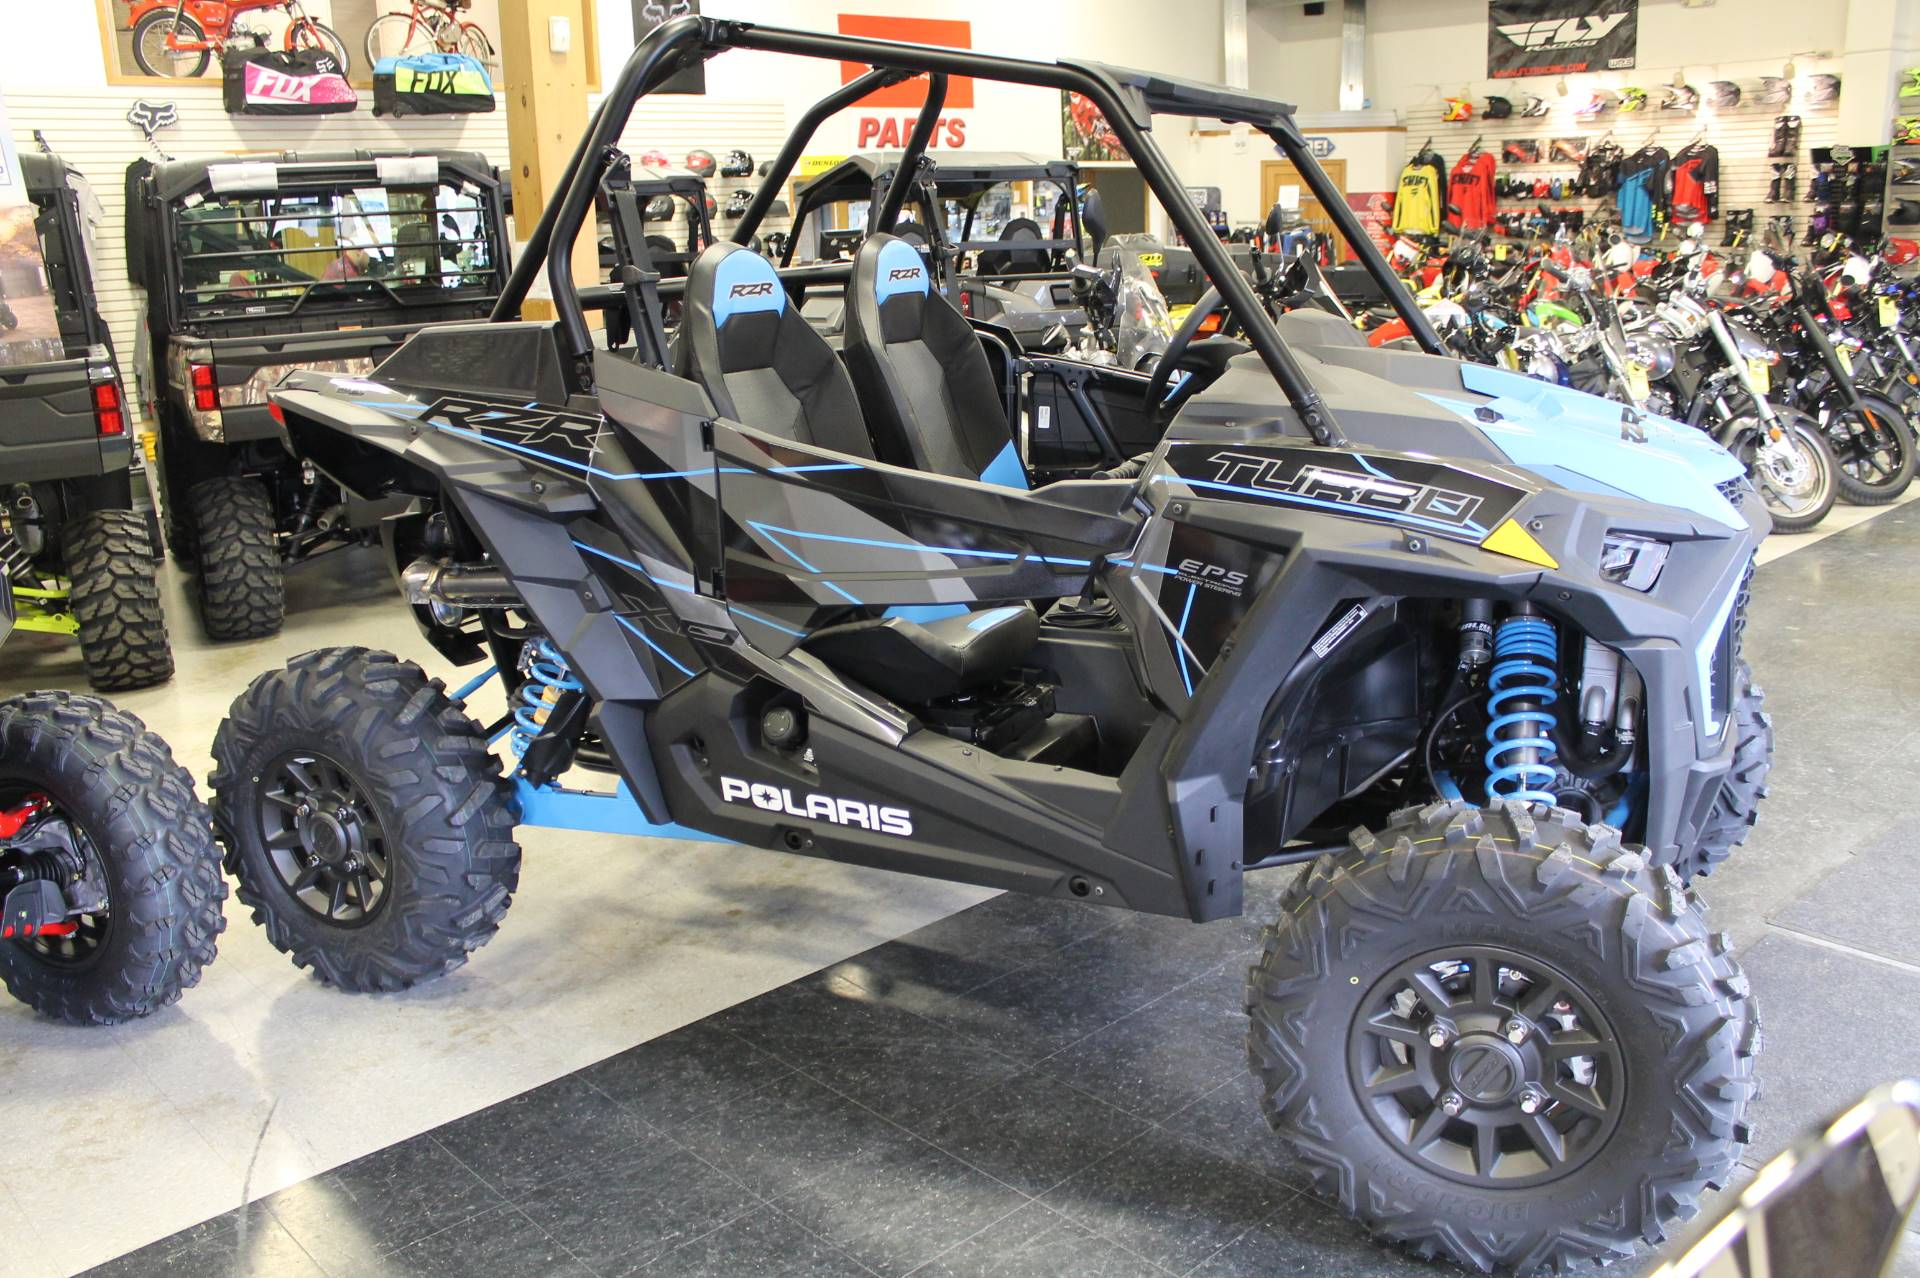 New 2019 Polaris RZR XP Turbo Utility Vehicles in Adams, MA | Stock